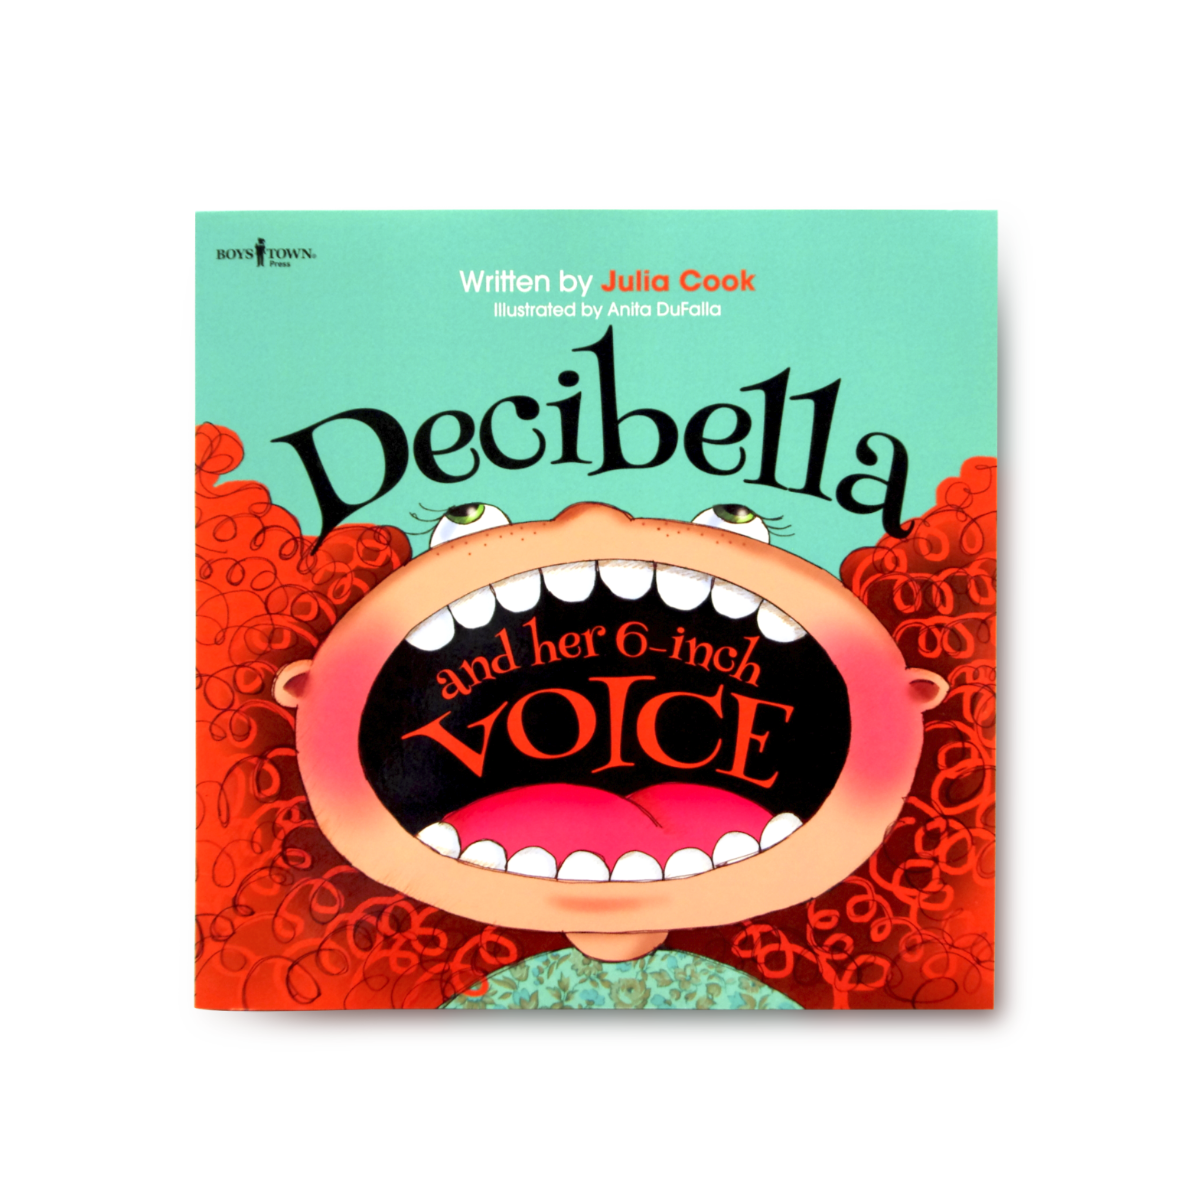 Decibella and Her 6-Inch Voice - Me Books Asia Store